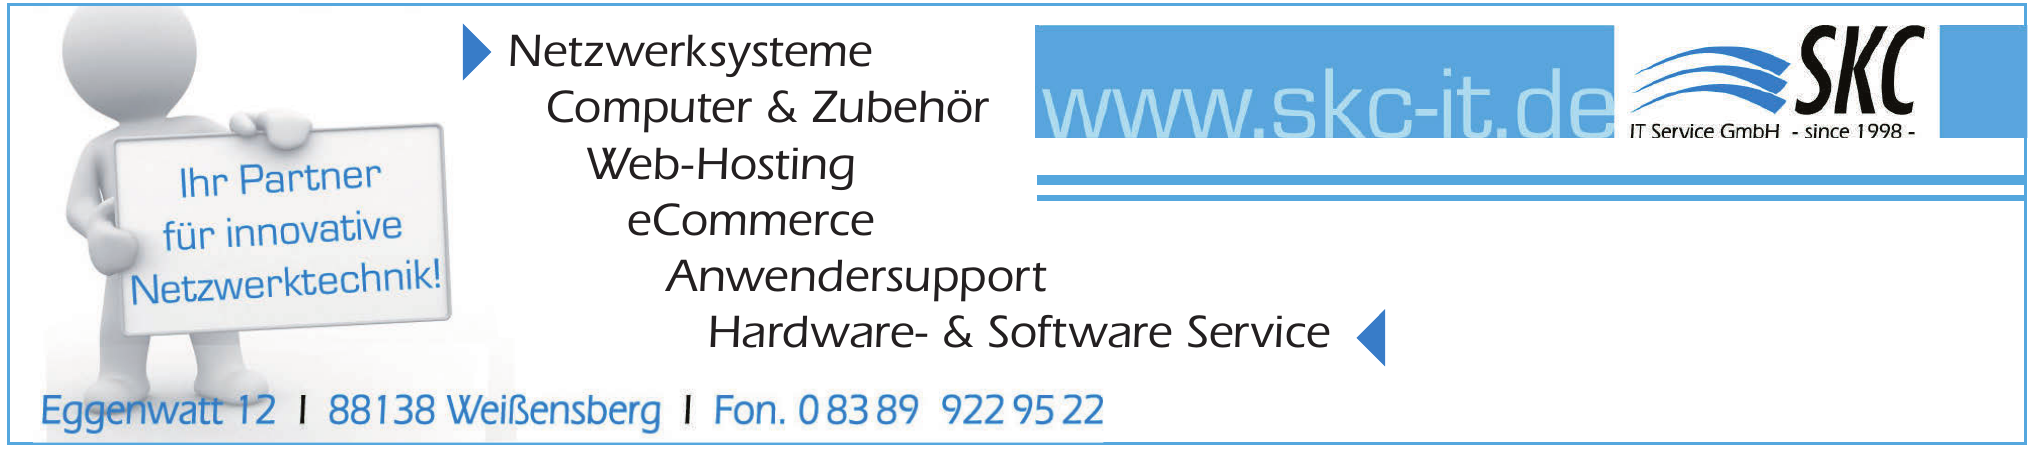 SKC IT Service GmbH